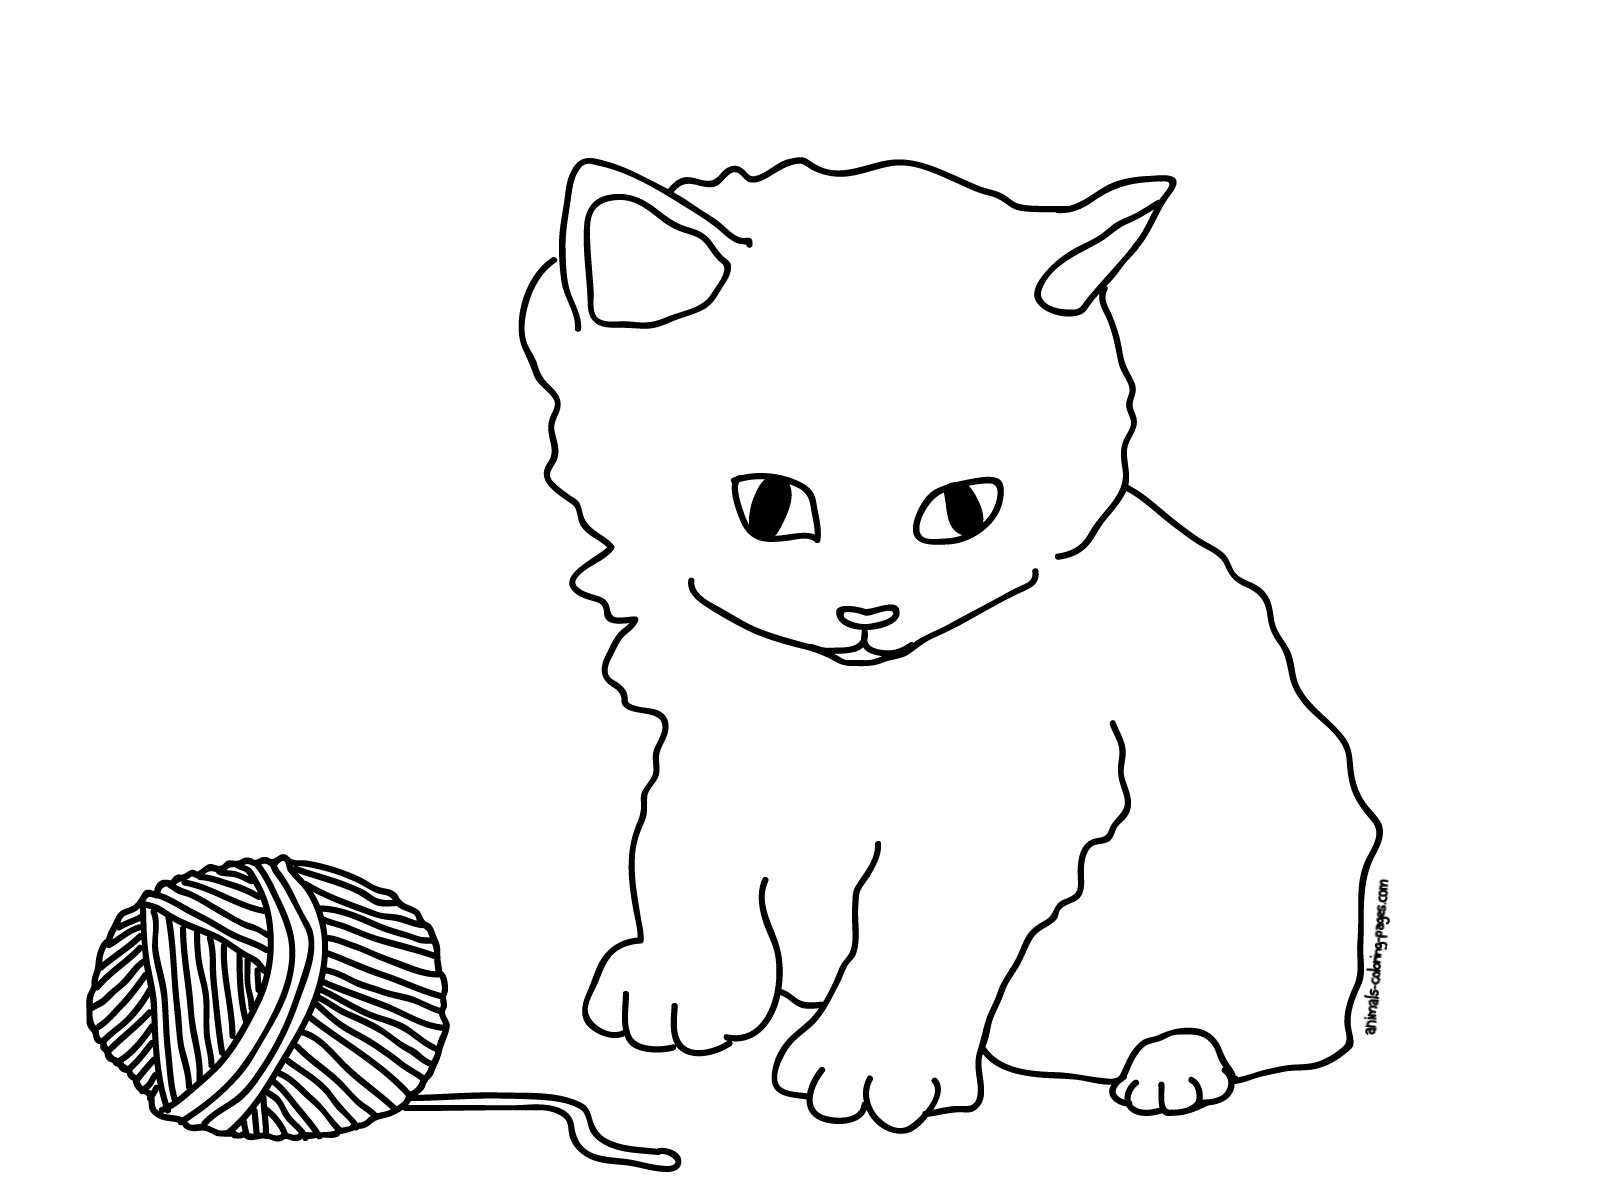 Coloring Pages: Cats And Kittens Coloring Pages Free And